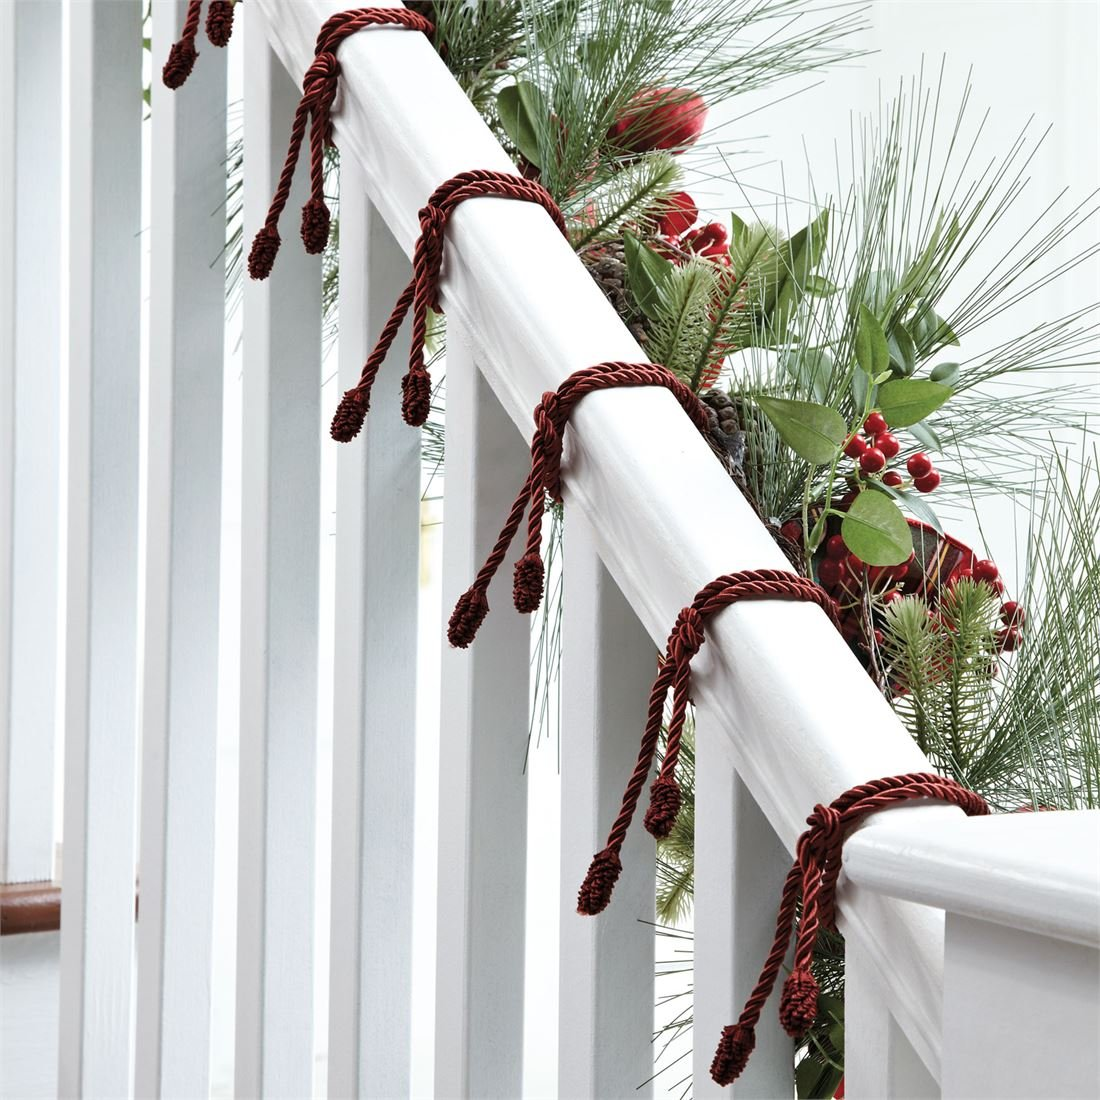 BrylaneHome Garland Ties, Set of 6 (Red,0) by BrylaneHome (Image #1)